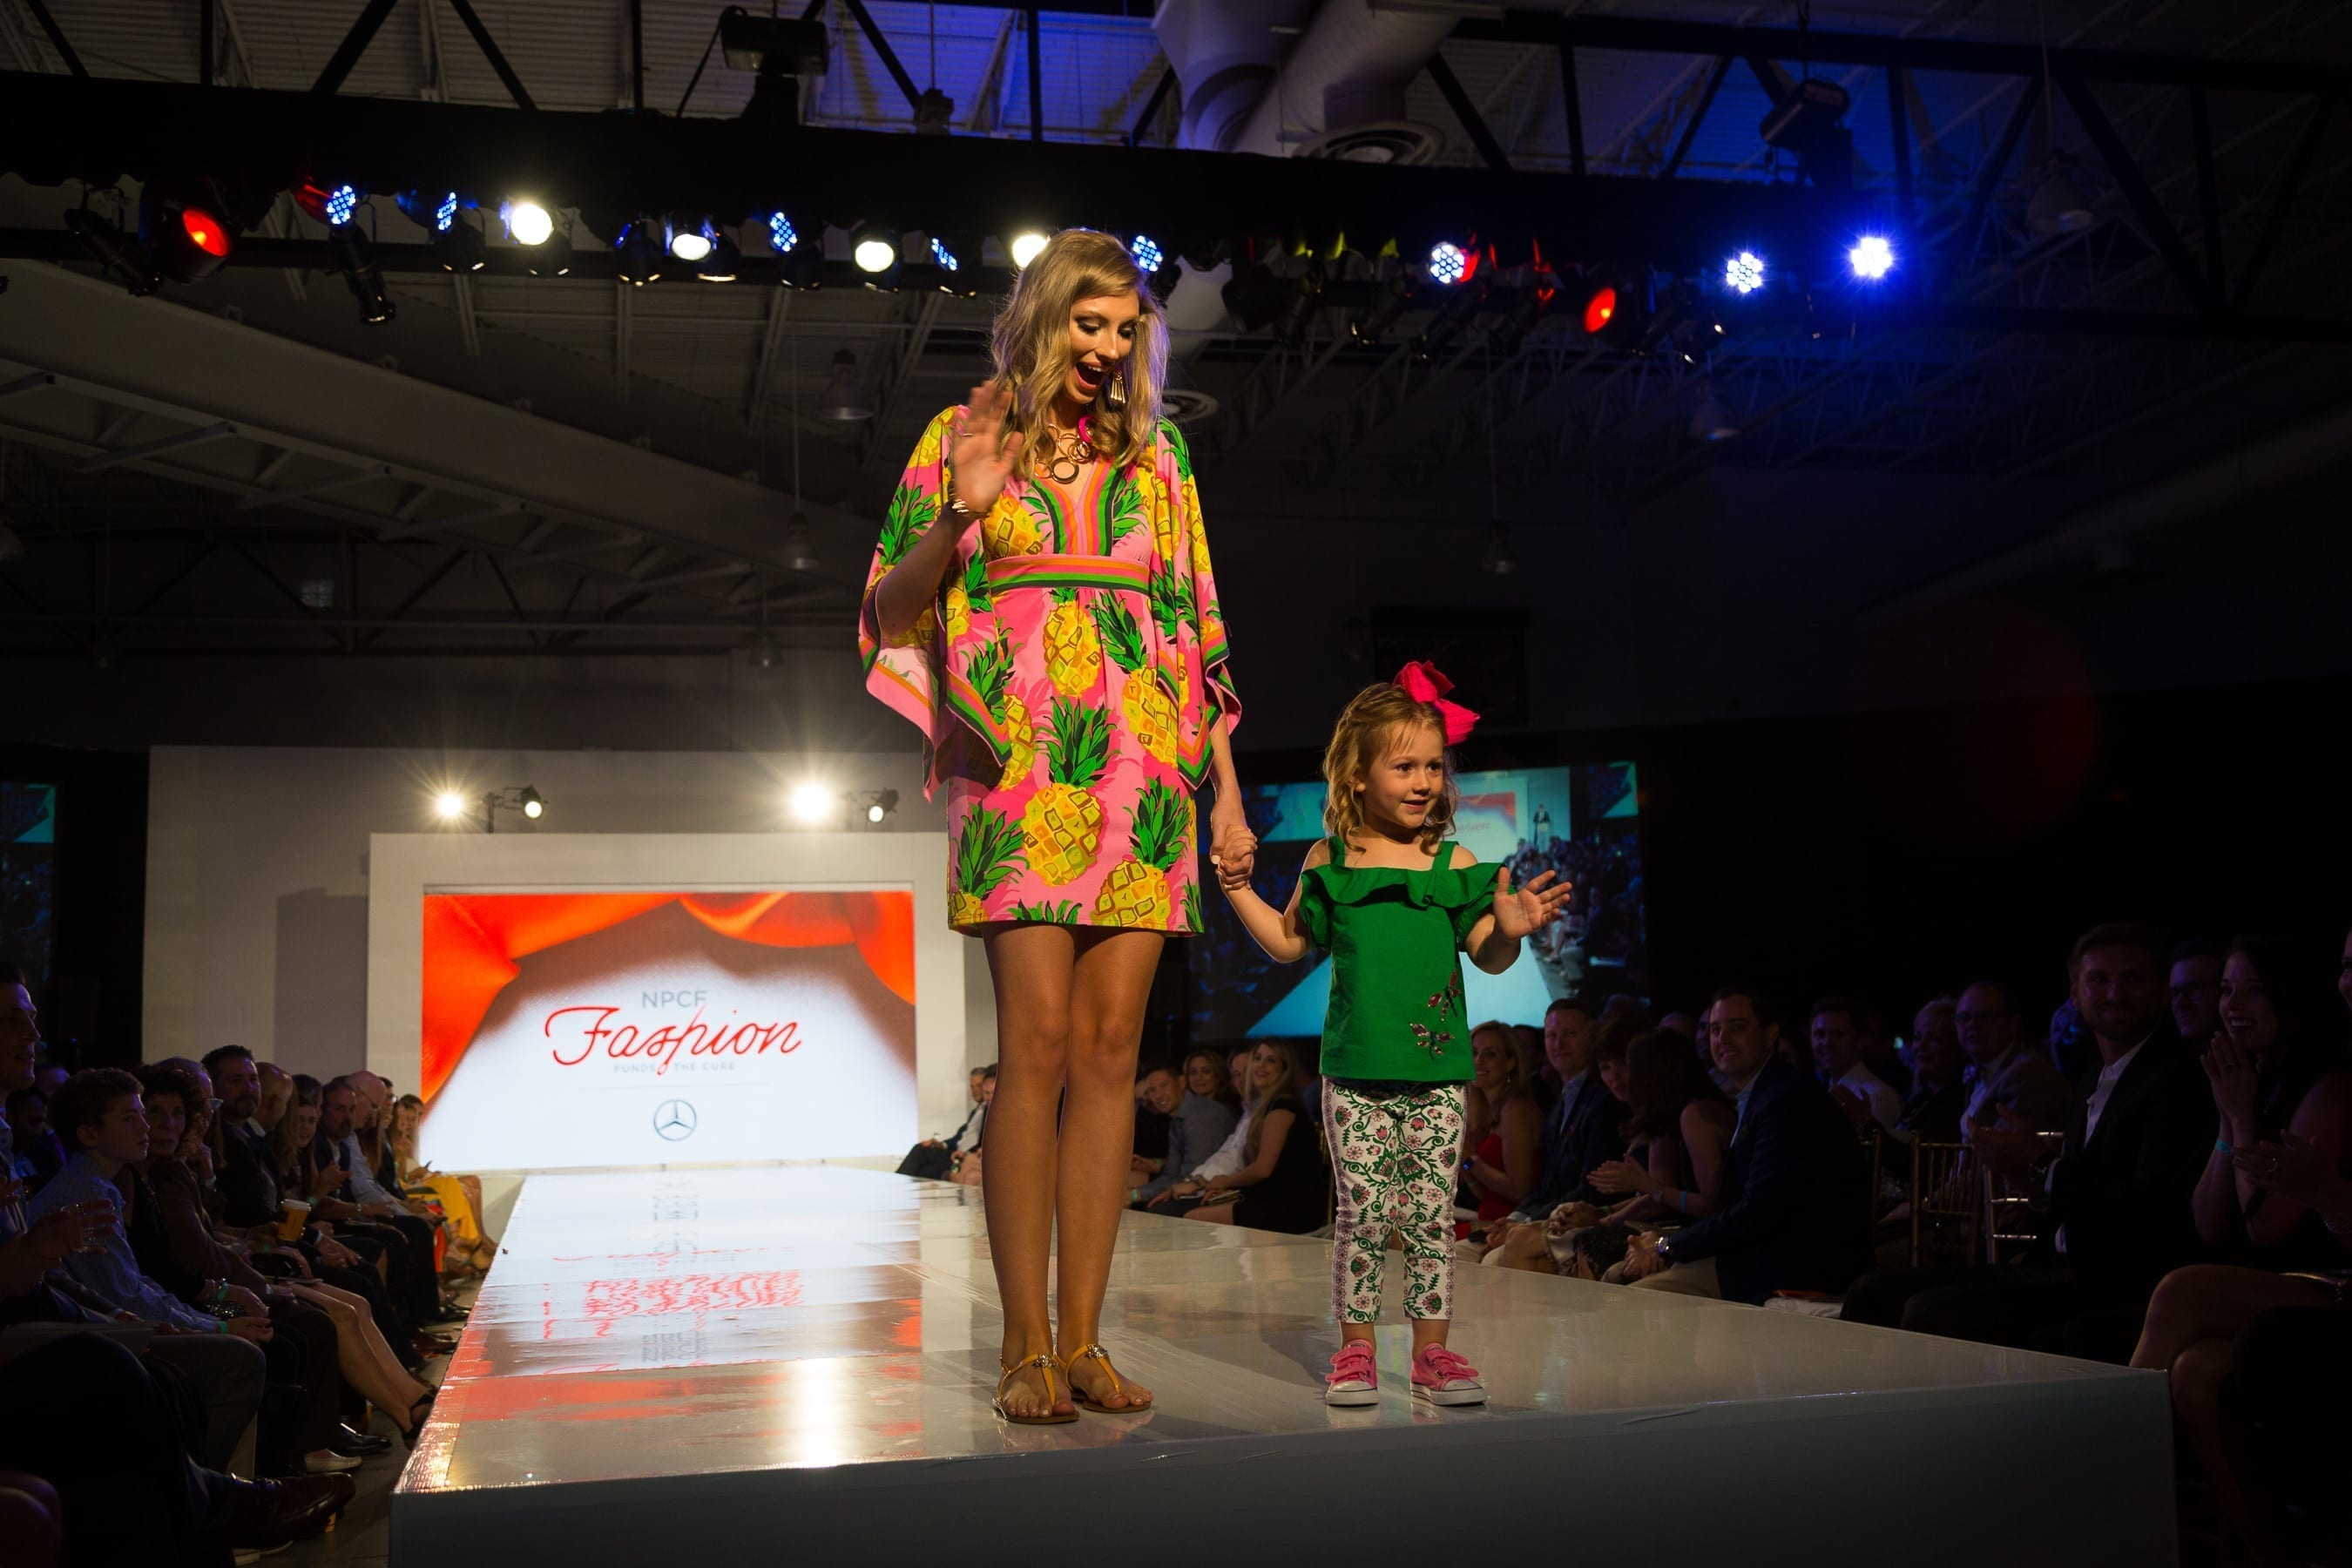 Young pediatric cancer patient walking the runway and waving at the crowd at the National Pediatric Cancer Foundation Fashion Funds the Cure Event in Tampa FL